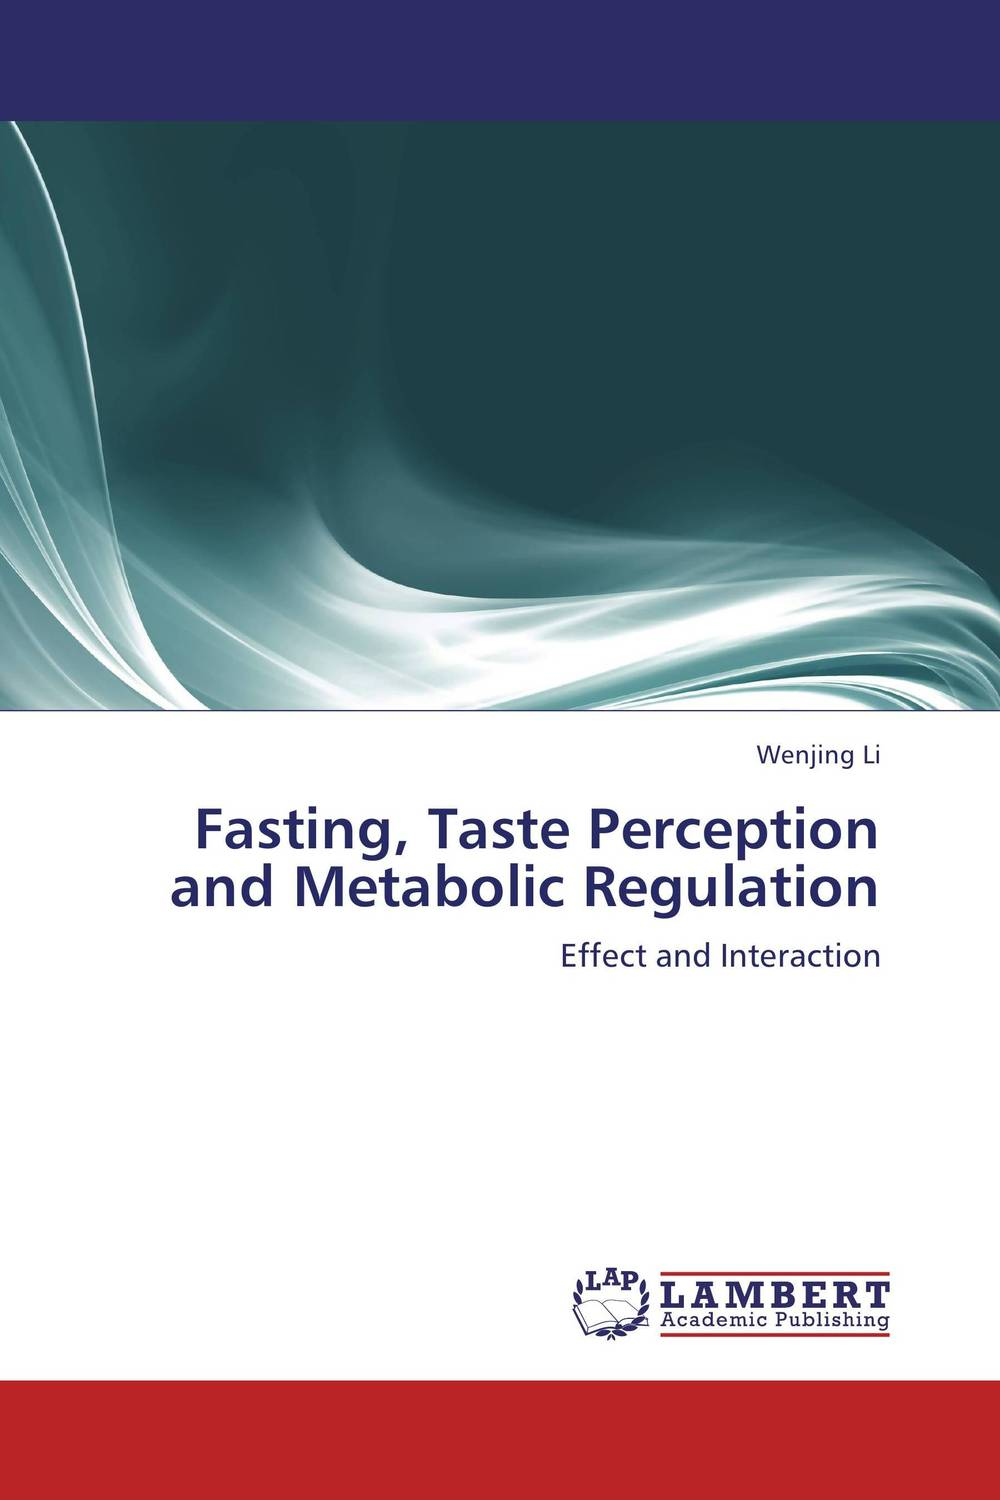 Fasting, Taste Perception and Metabolic Regulation the effect of securities regulation and corporate tax